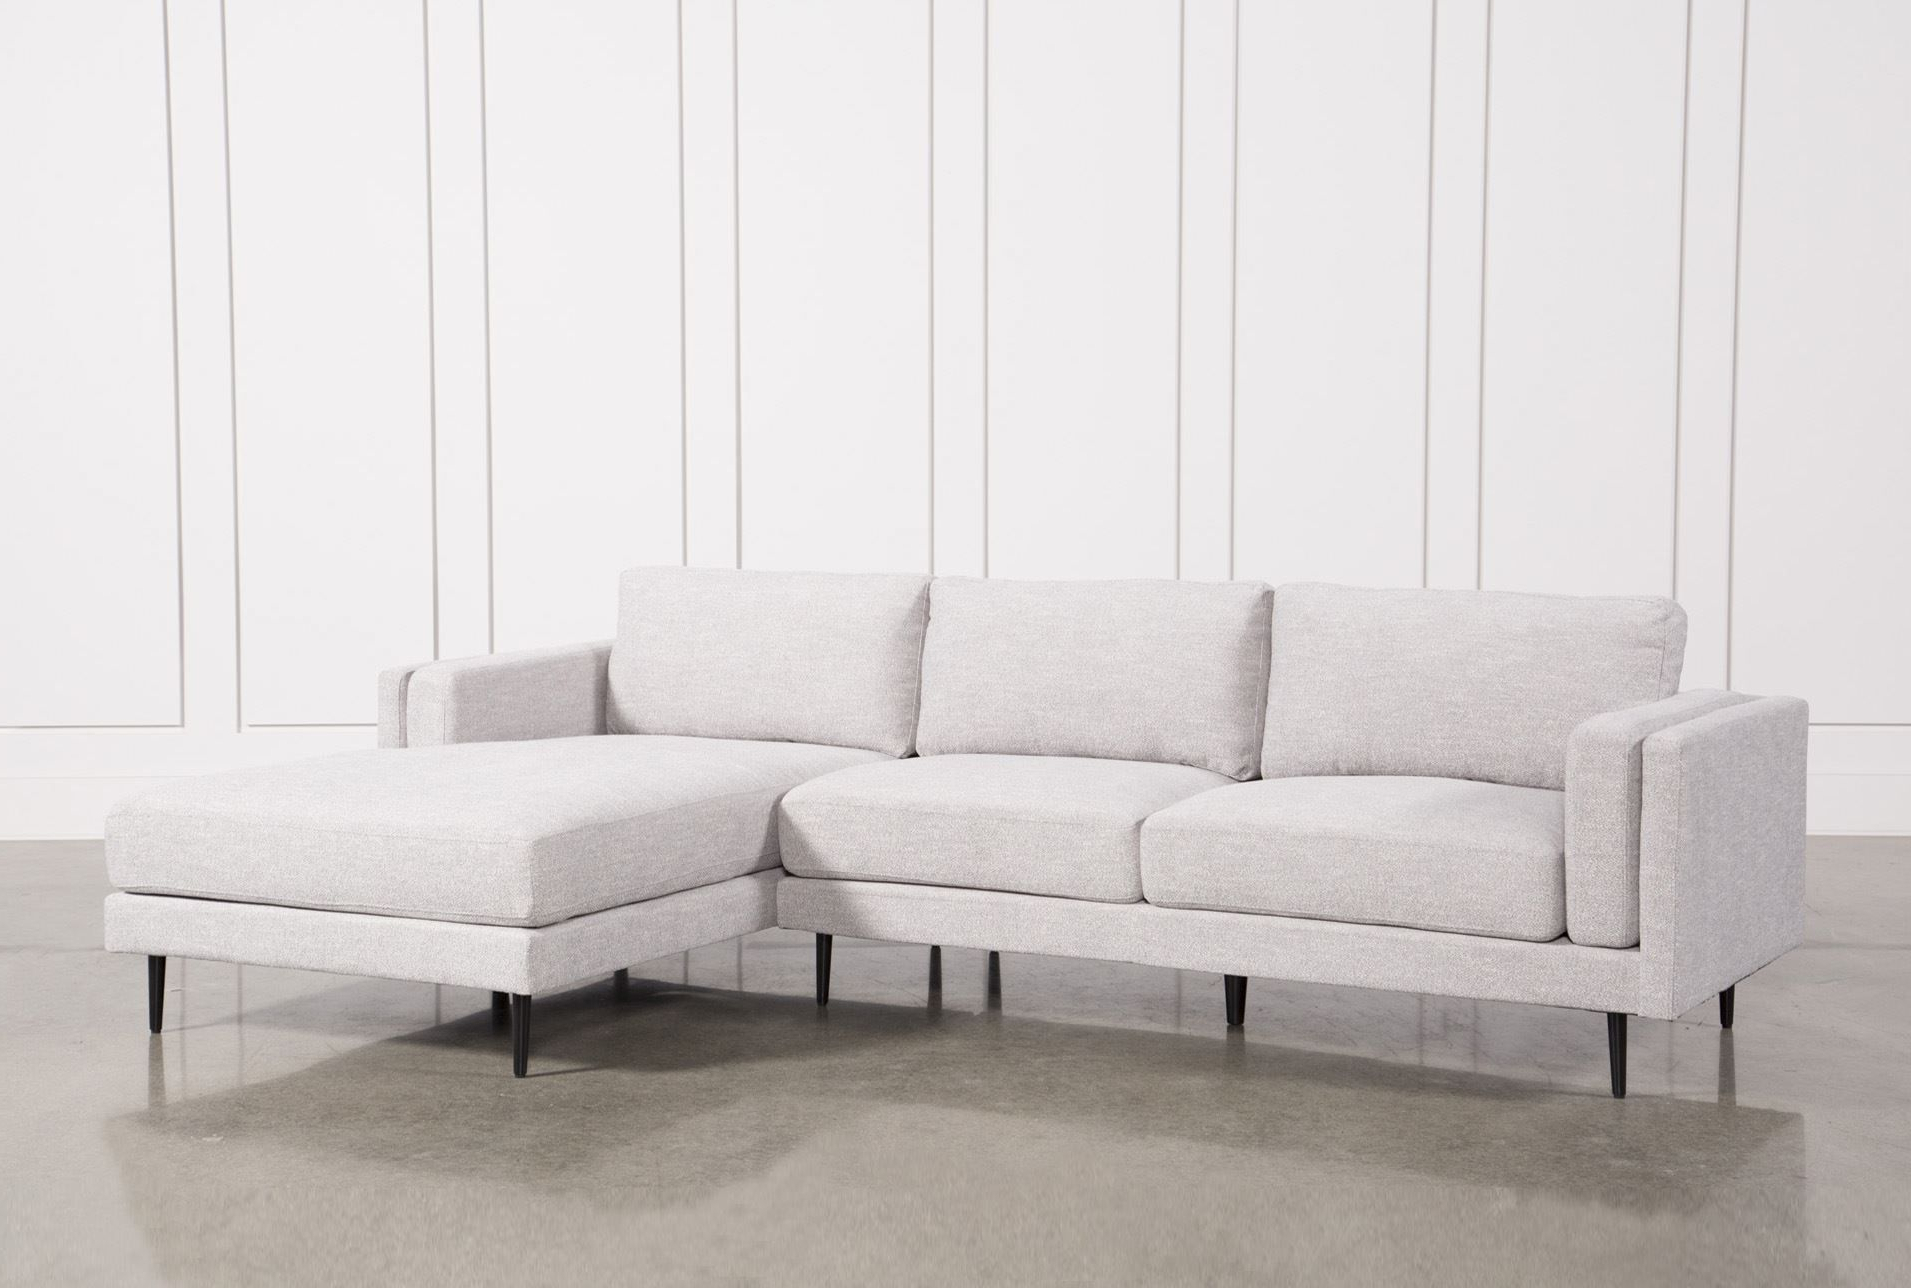 Lucy Dark Grey 2 Piece Sleeper Sectionals With Raf Chaise Intended For Popular Aquarius Light Grey 2 Piece Sectional W/raf Chaise (Gallery 17 of 20)